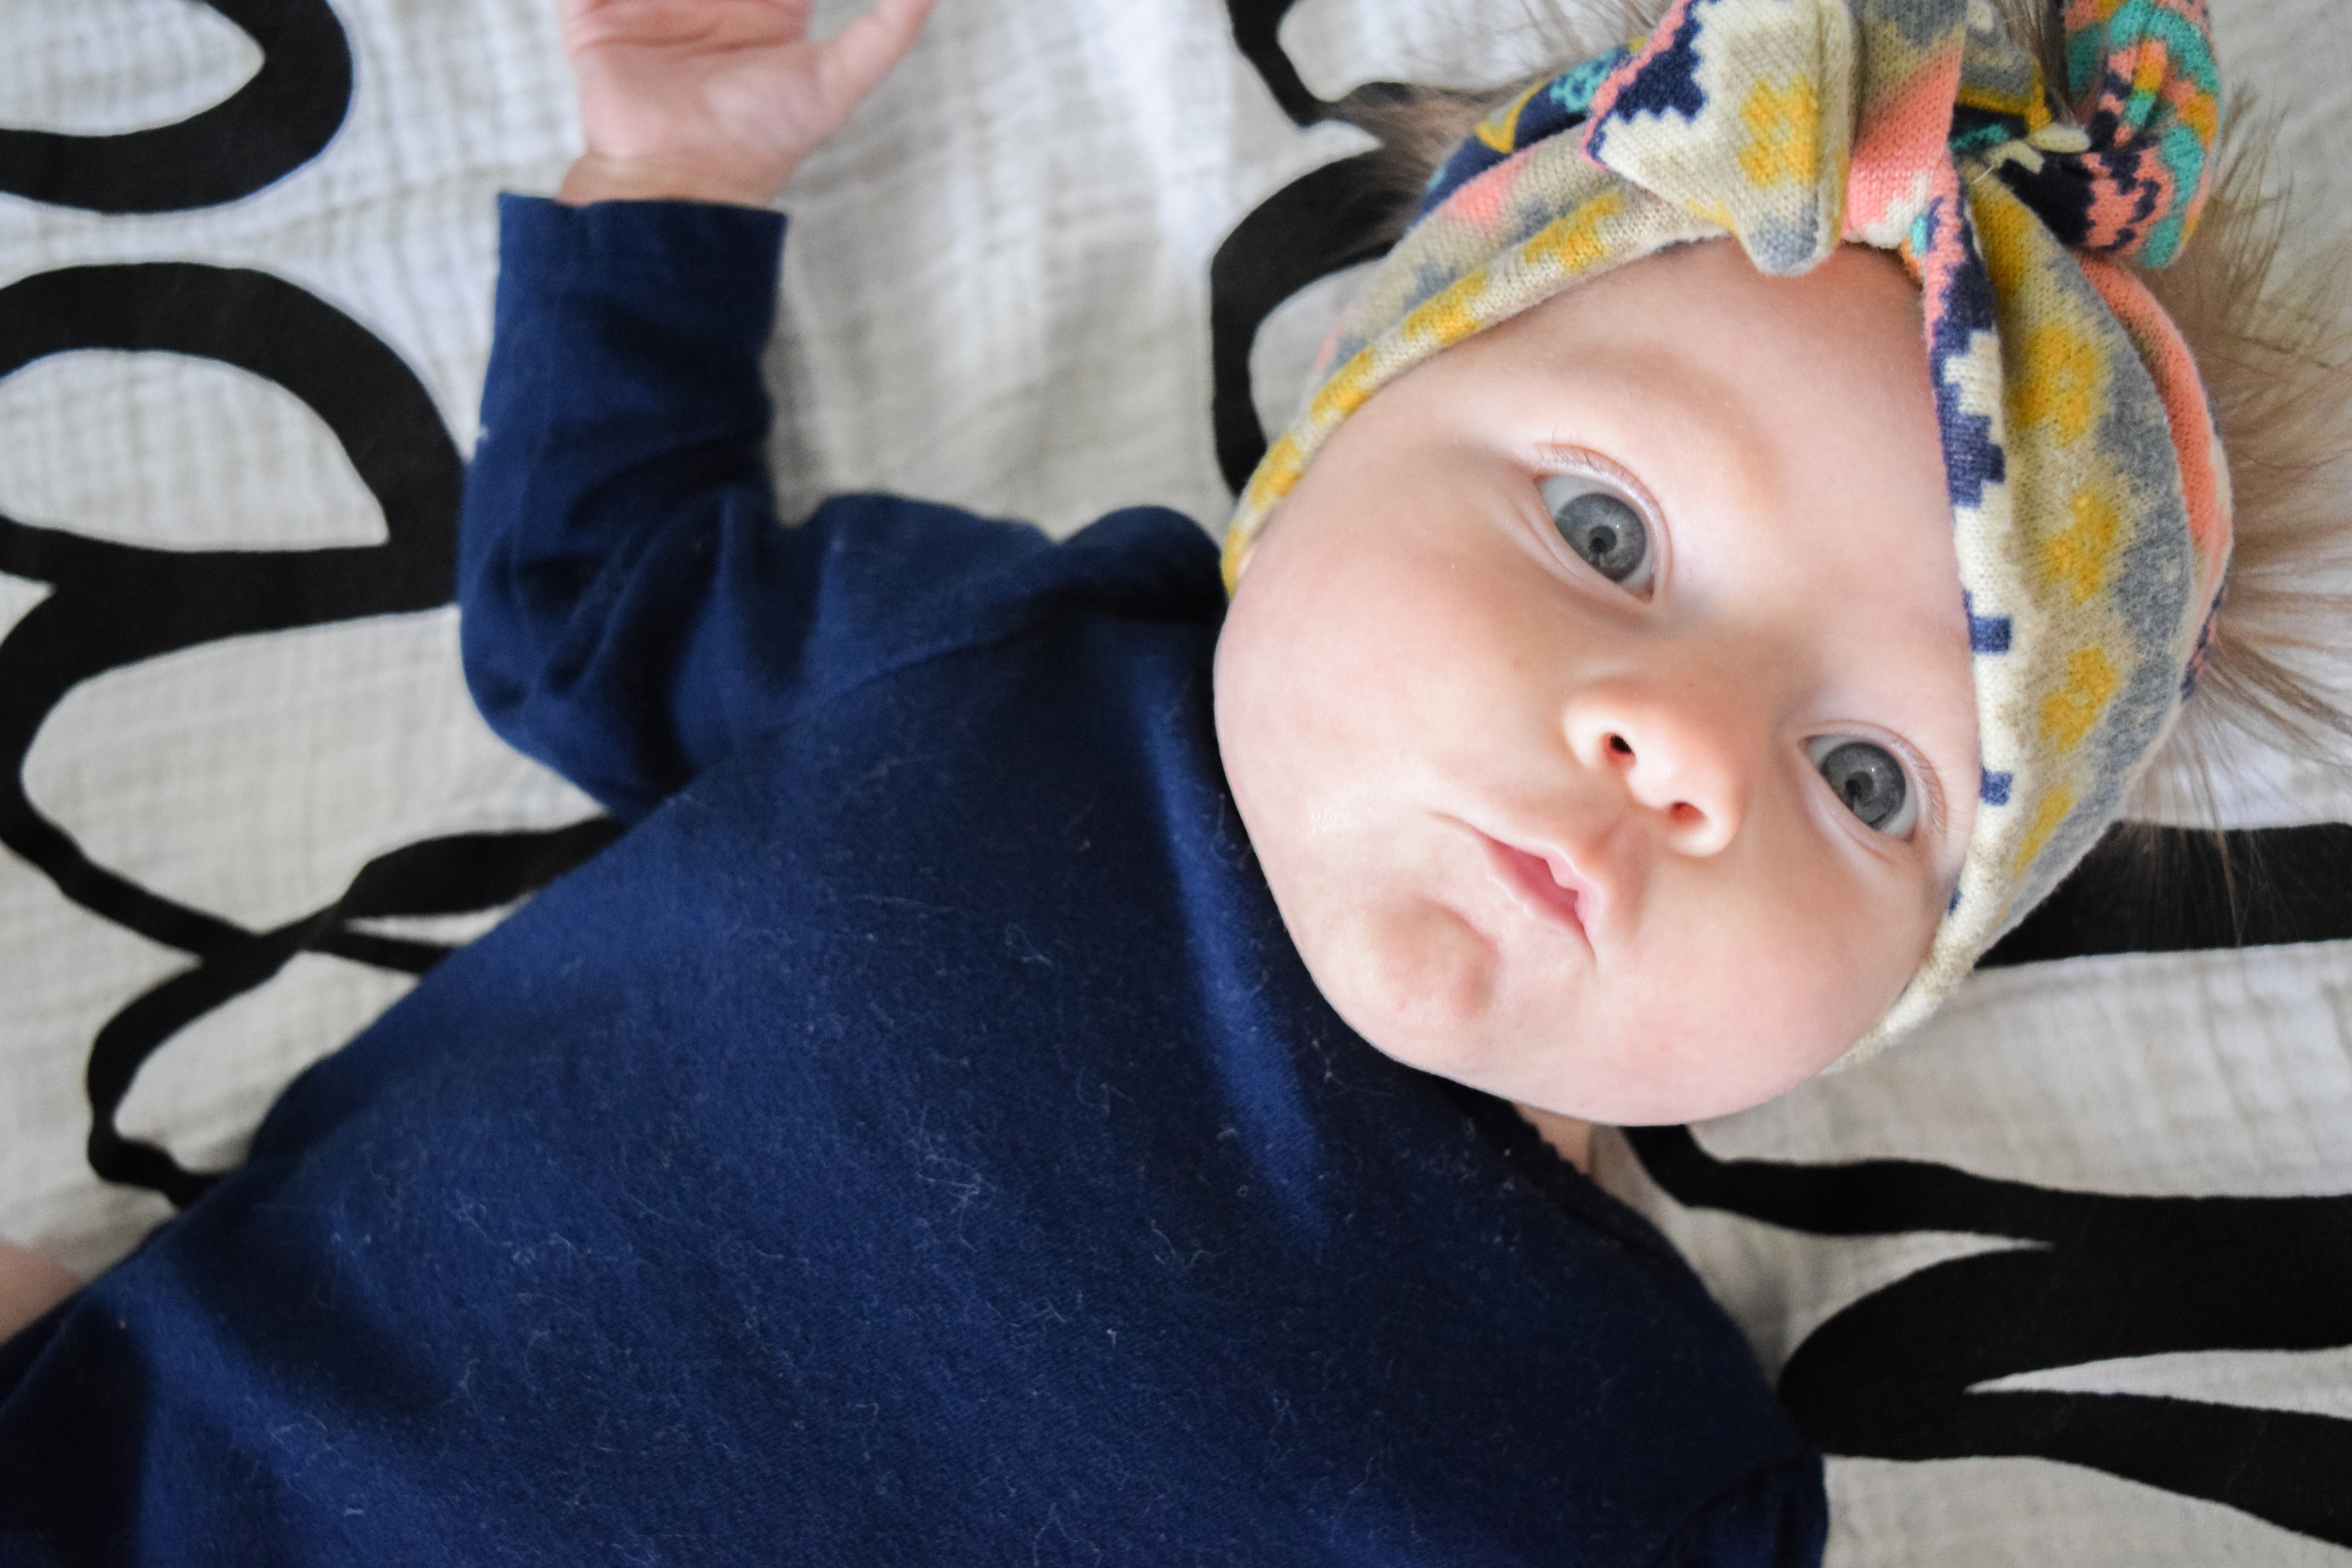 routine or schedule for a 2 month old baby